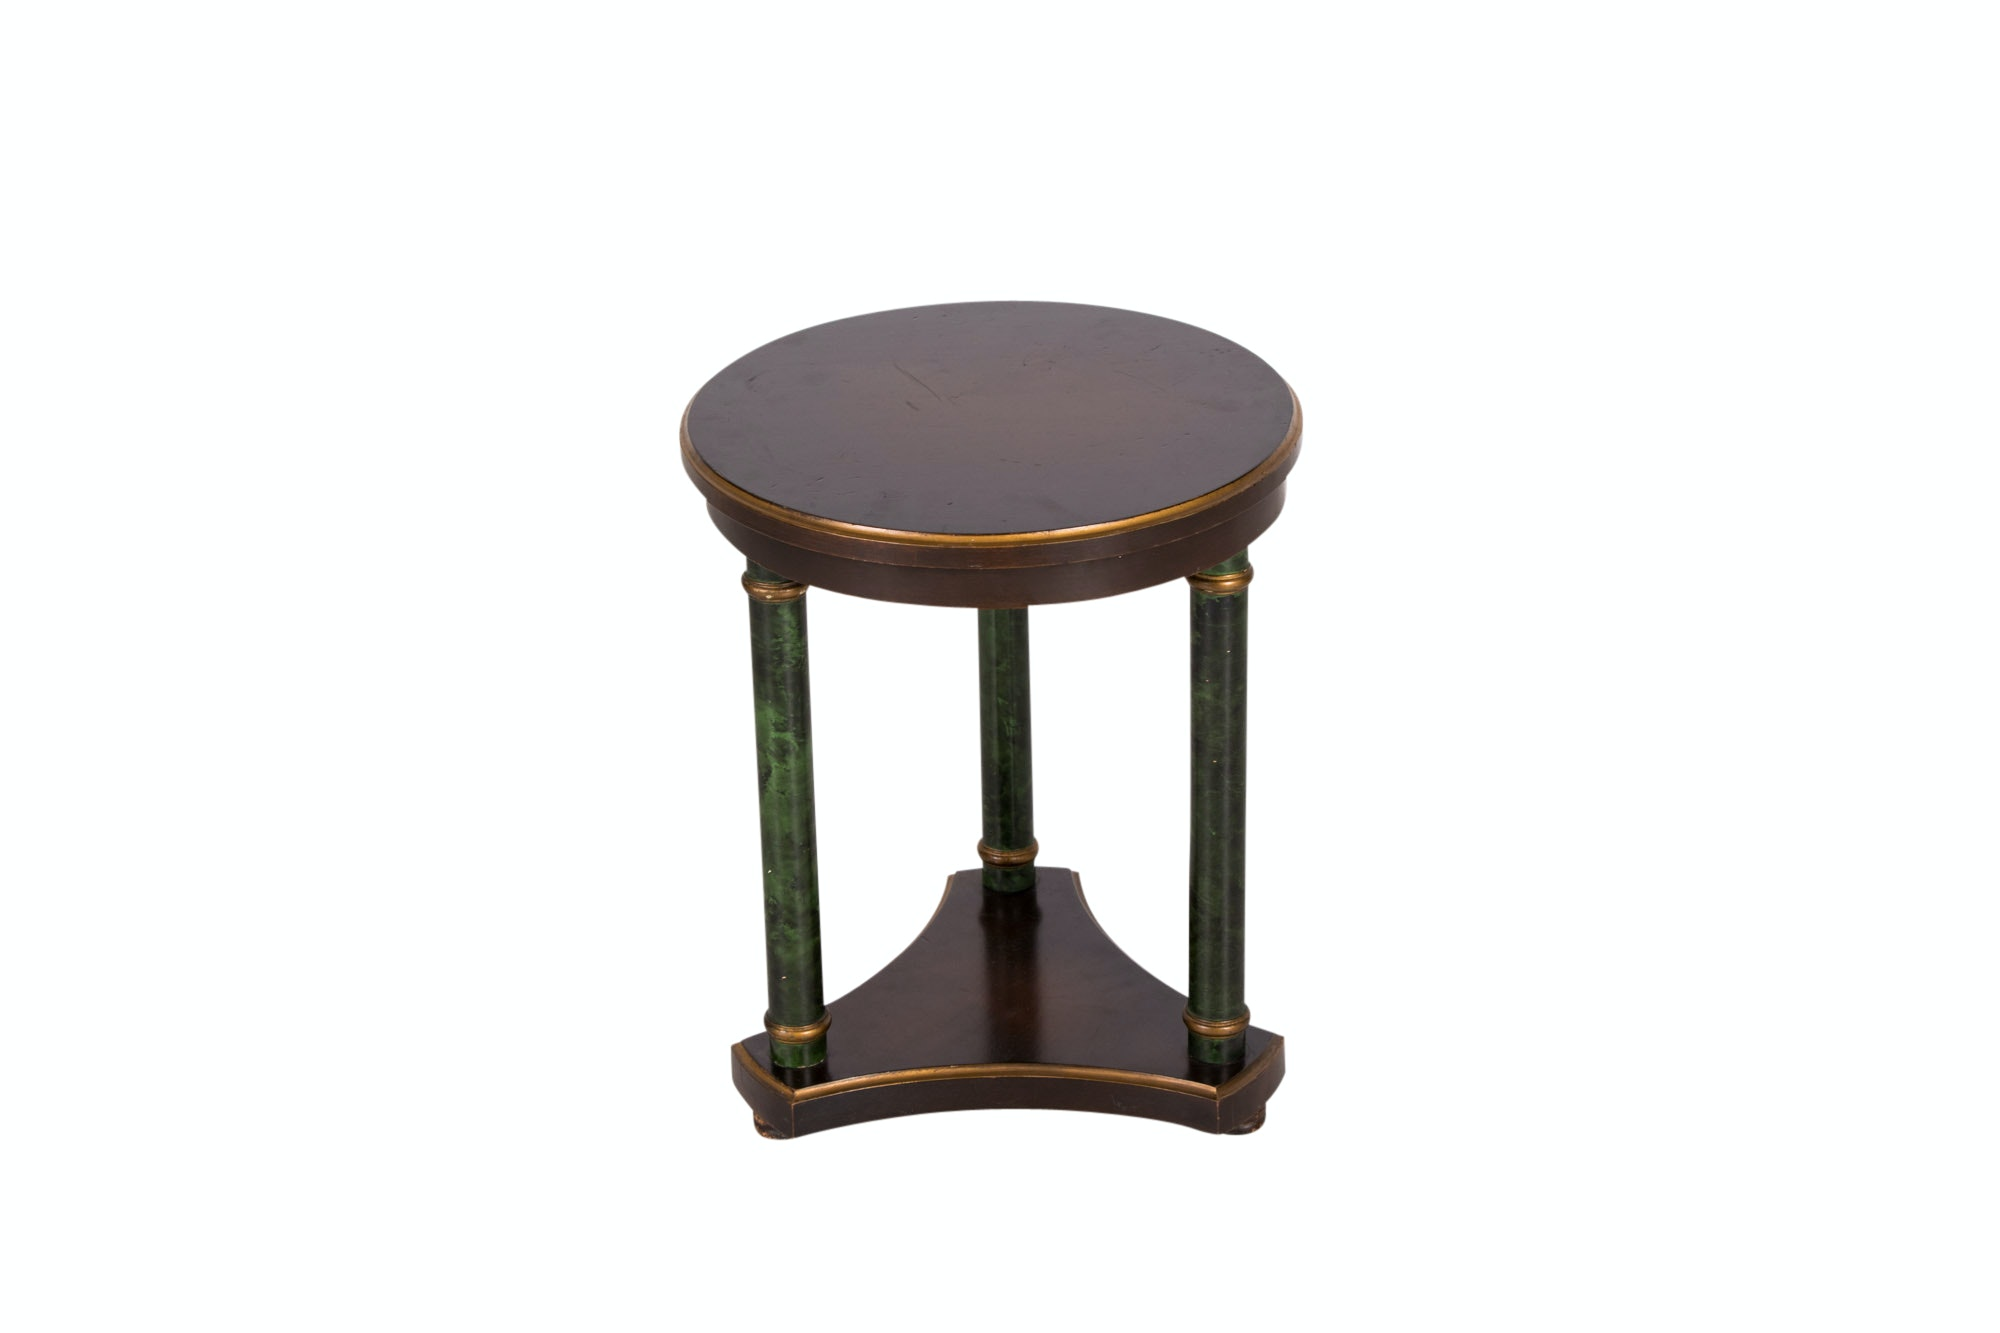 Neoclassical Style Parcel-Gilt Side Table with Marbleized Columns, 20th Century